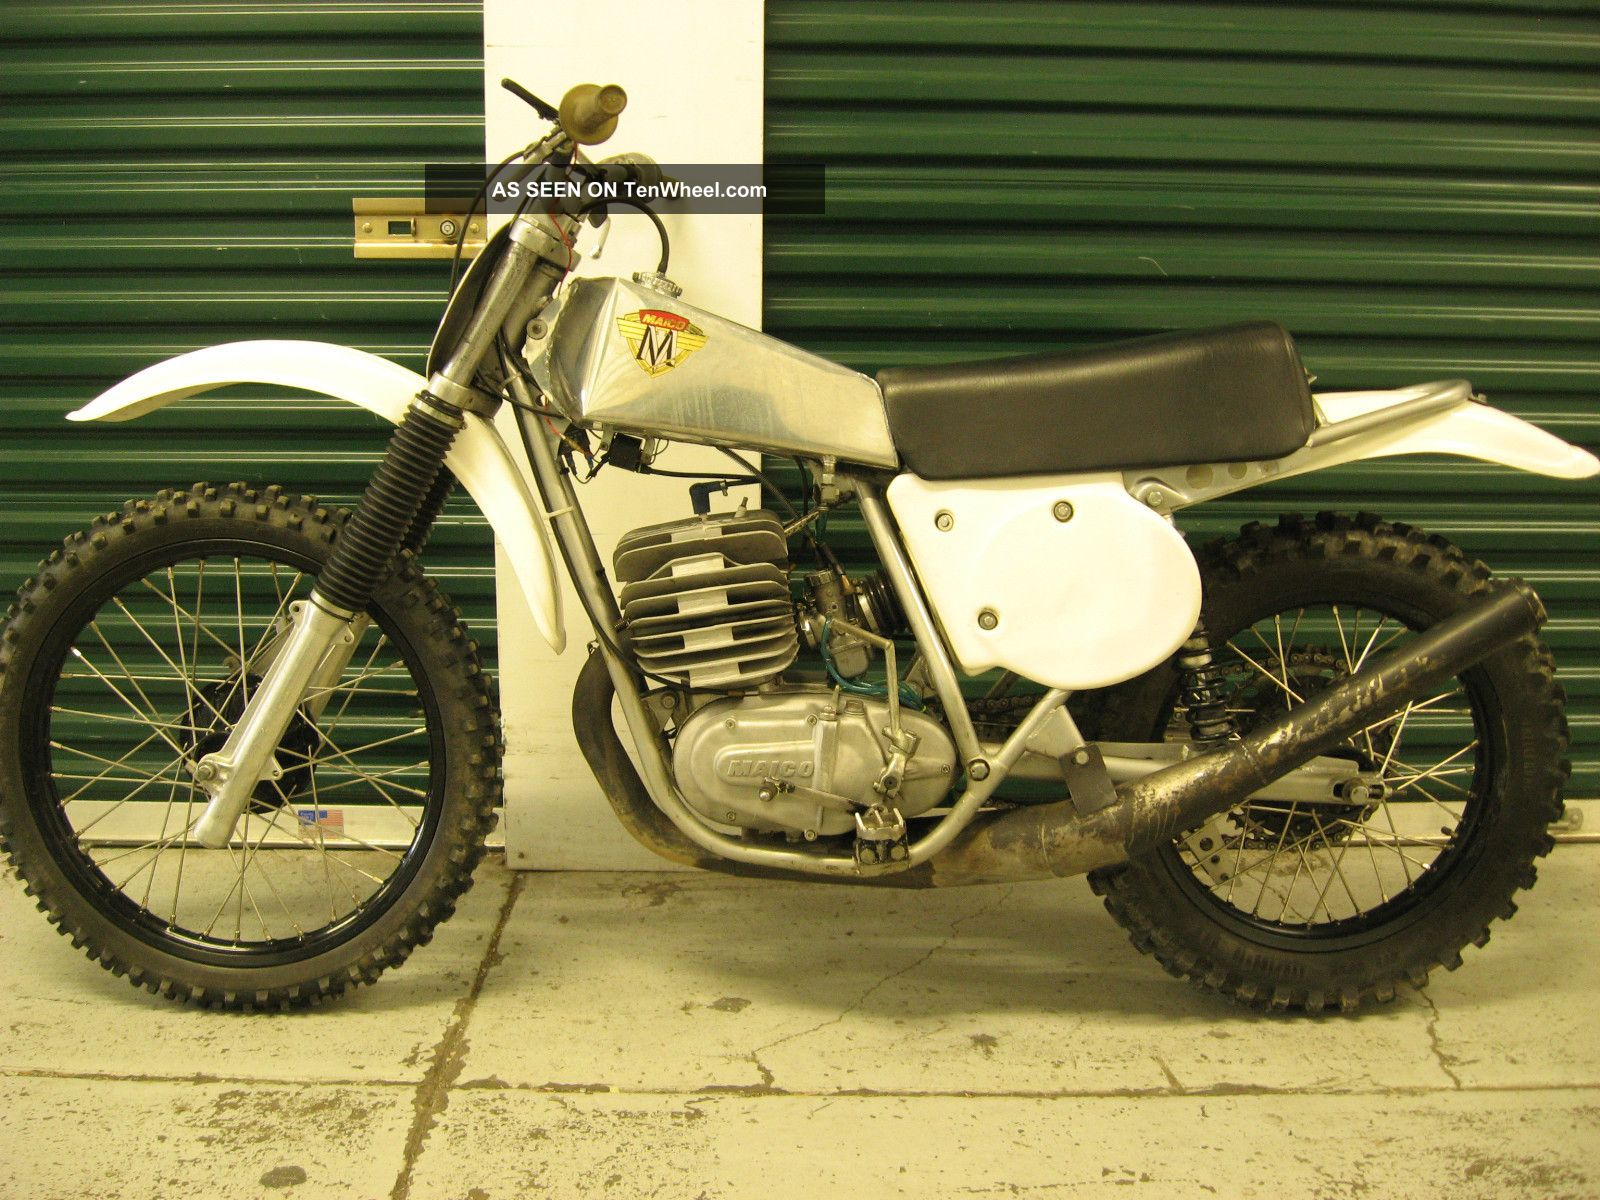 1974.  5 Maico 400 Gp,  Ahrma,  Vintage Race Bike,  250 490 Other Makes photo